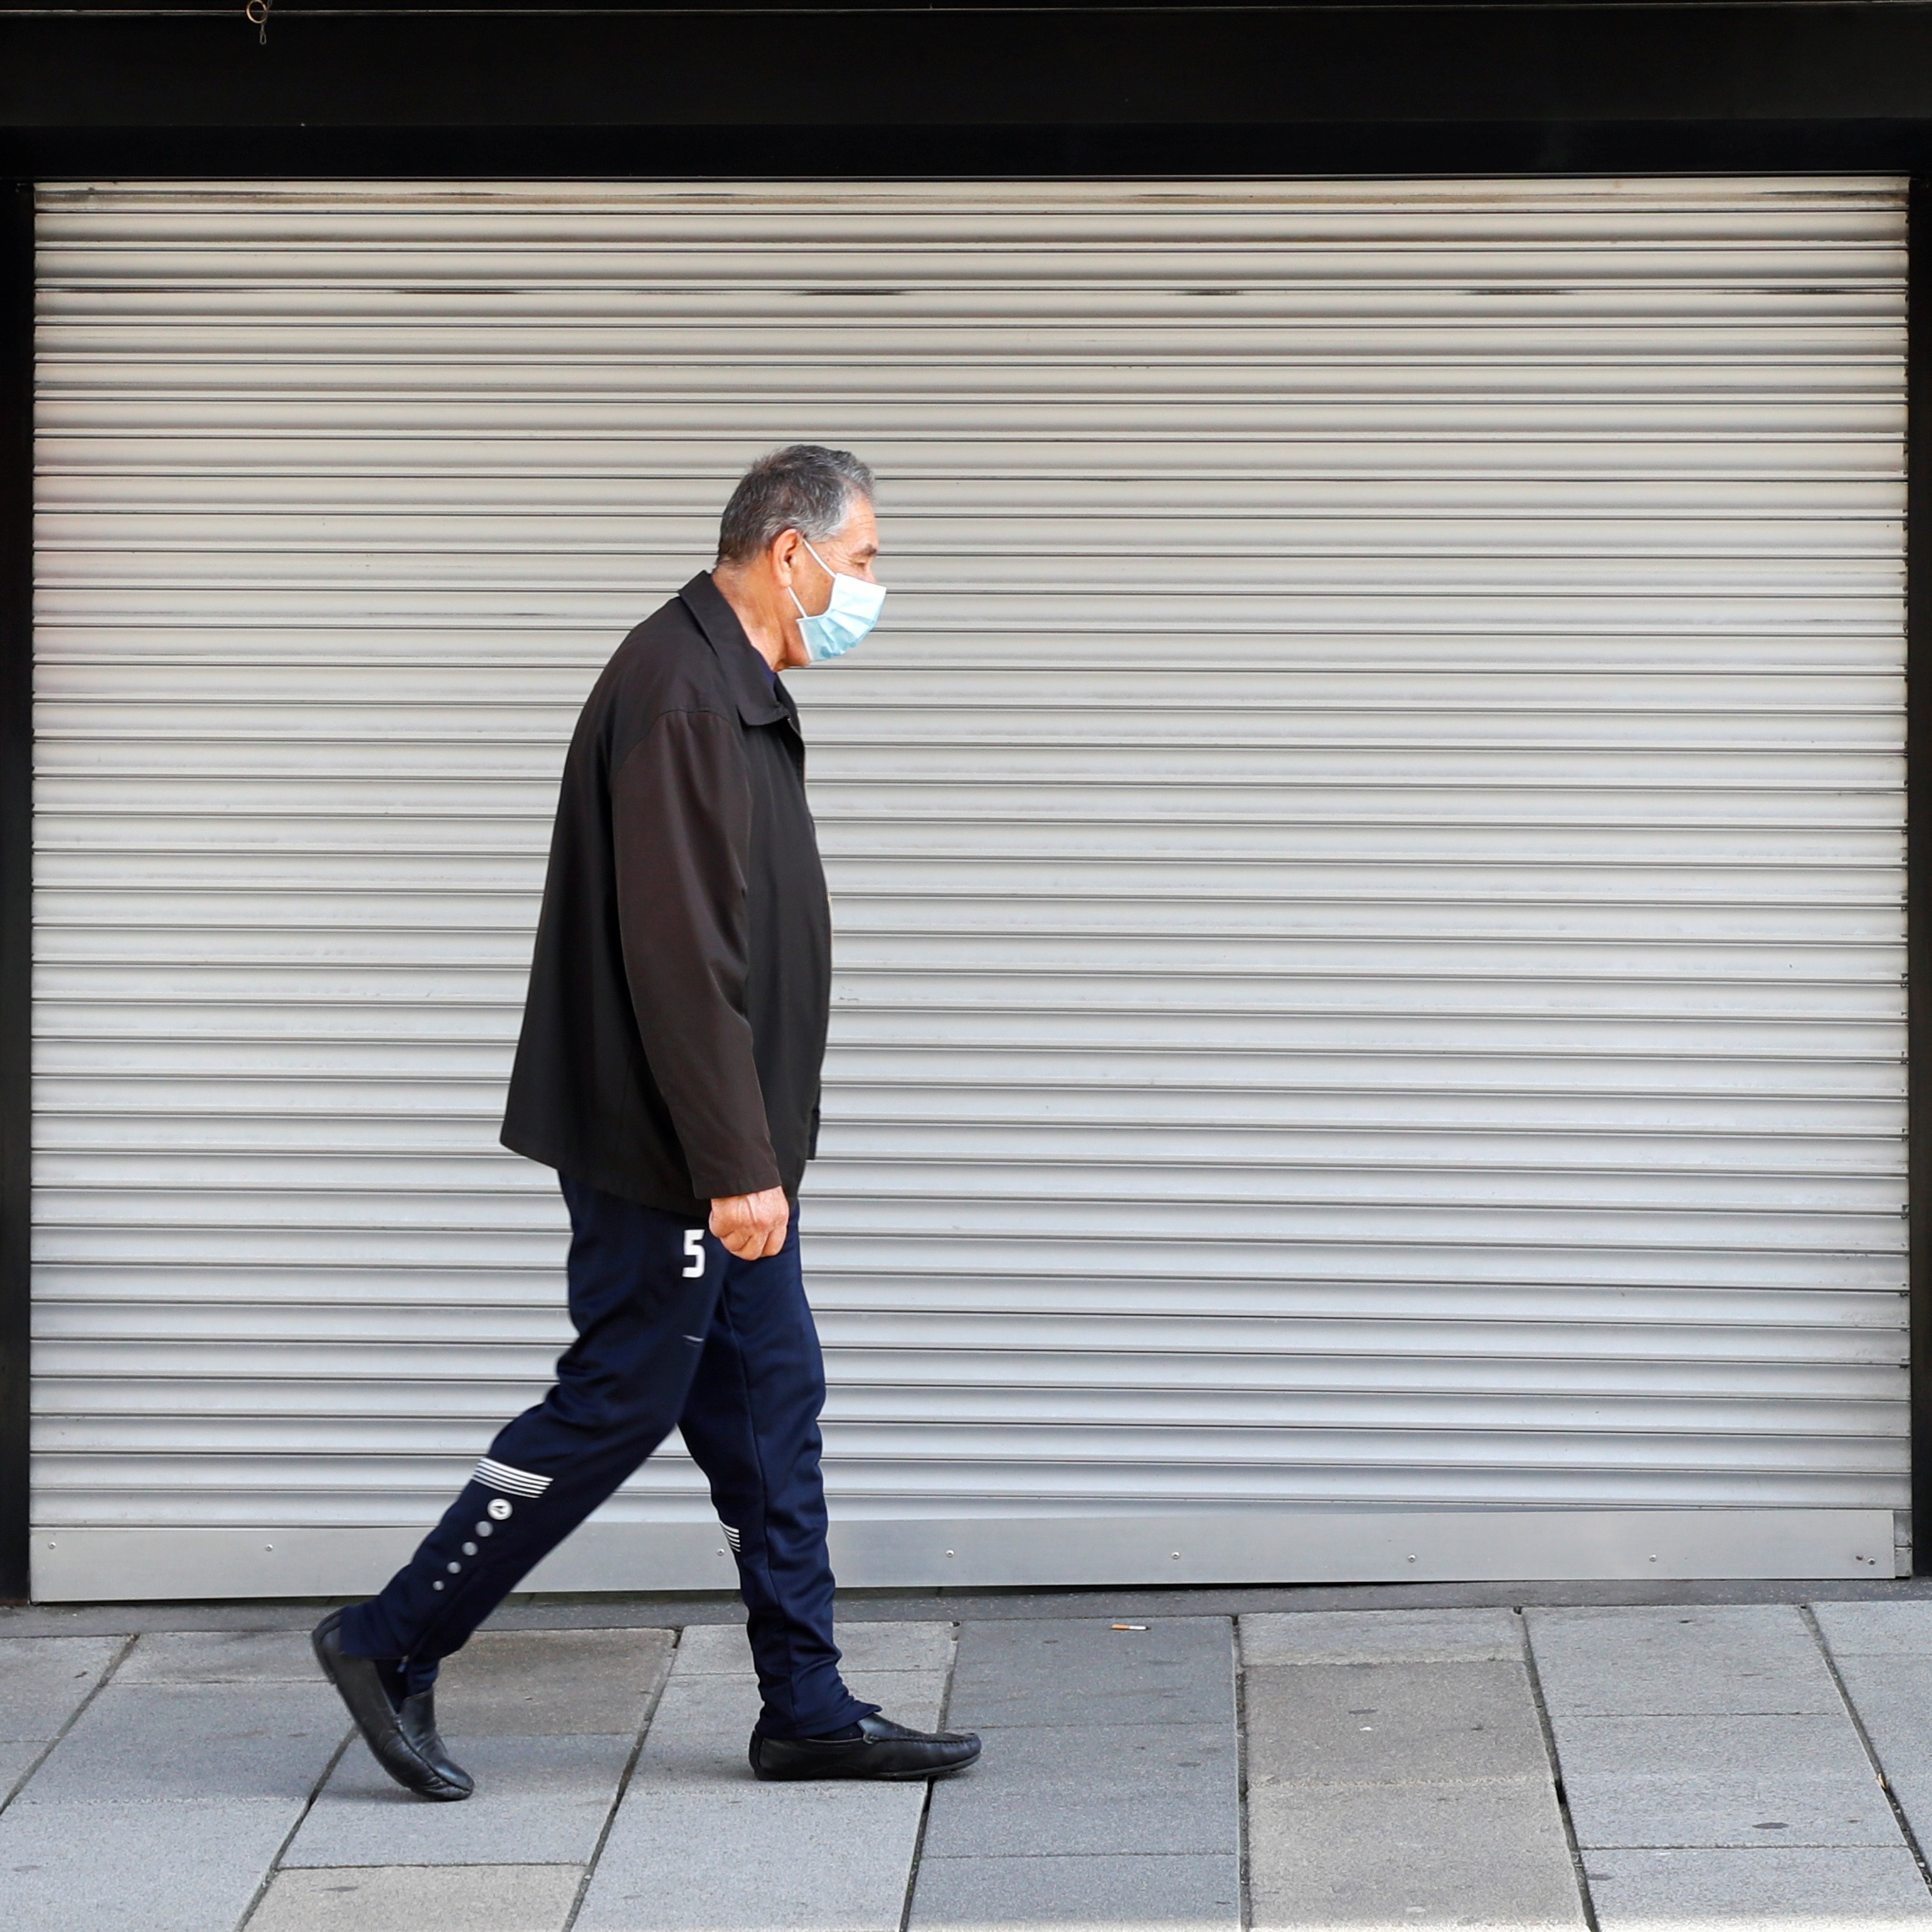 A man, wearing a protective face mask, walks past a closed shop after the Austrian government announced a lockdown including the closure of all non-essential shops, as the spread of the coronavirus disease continues, in Vienna, Austria on November 17, 2020